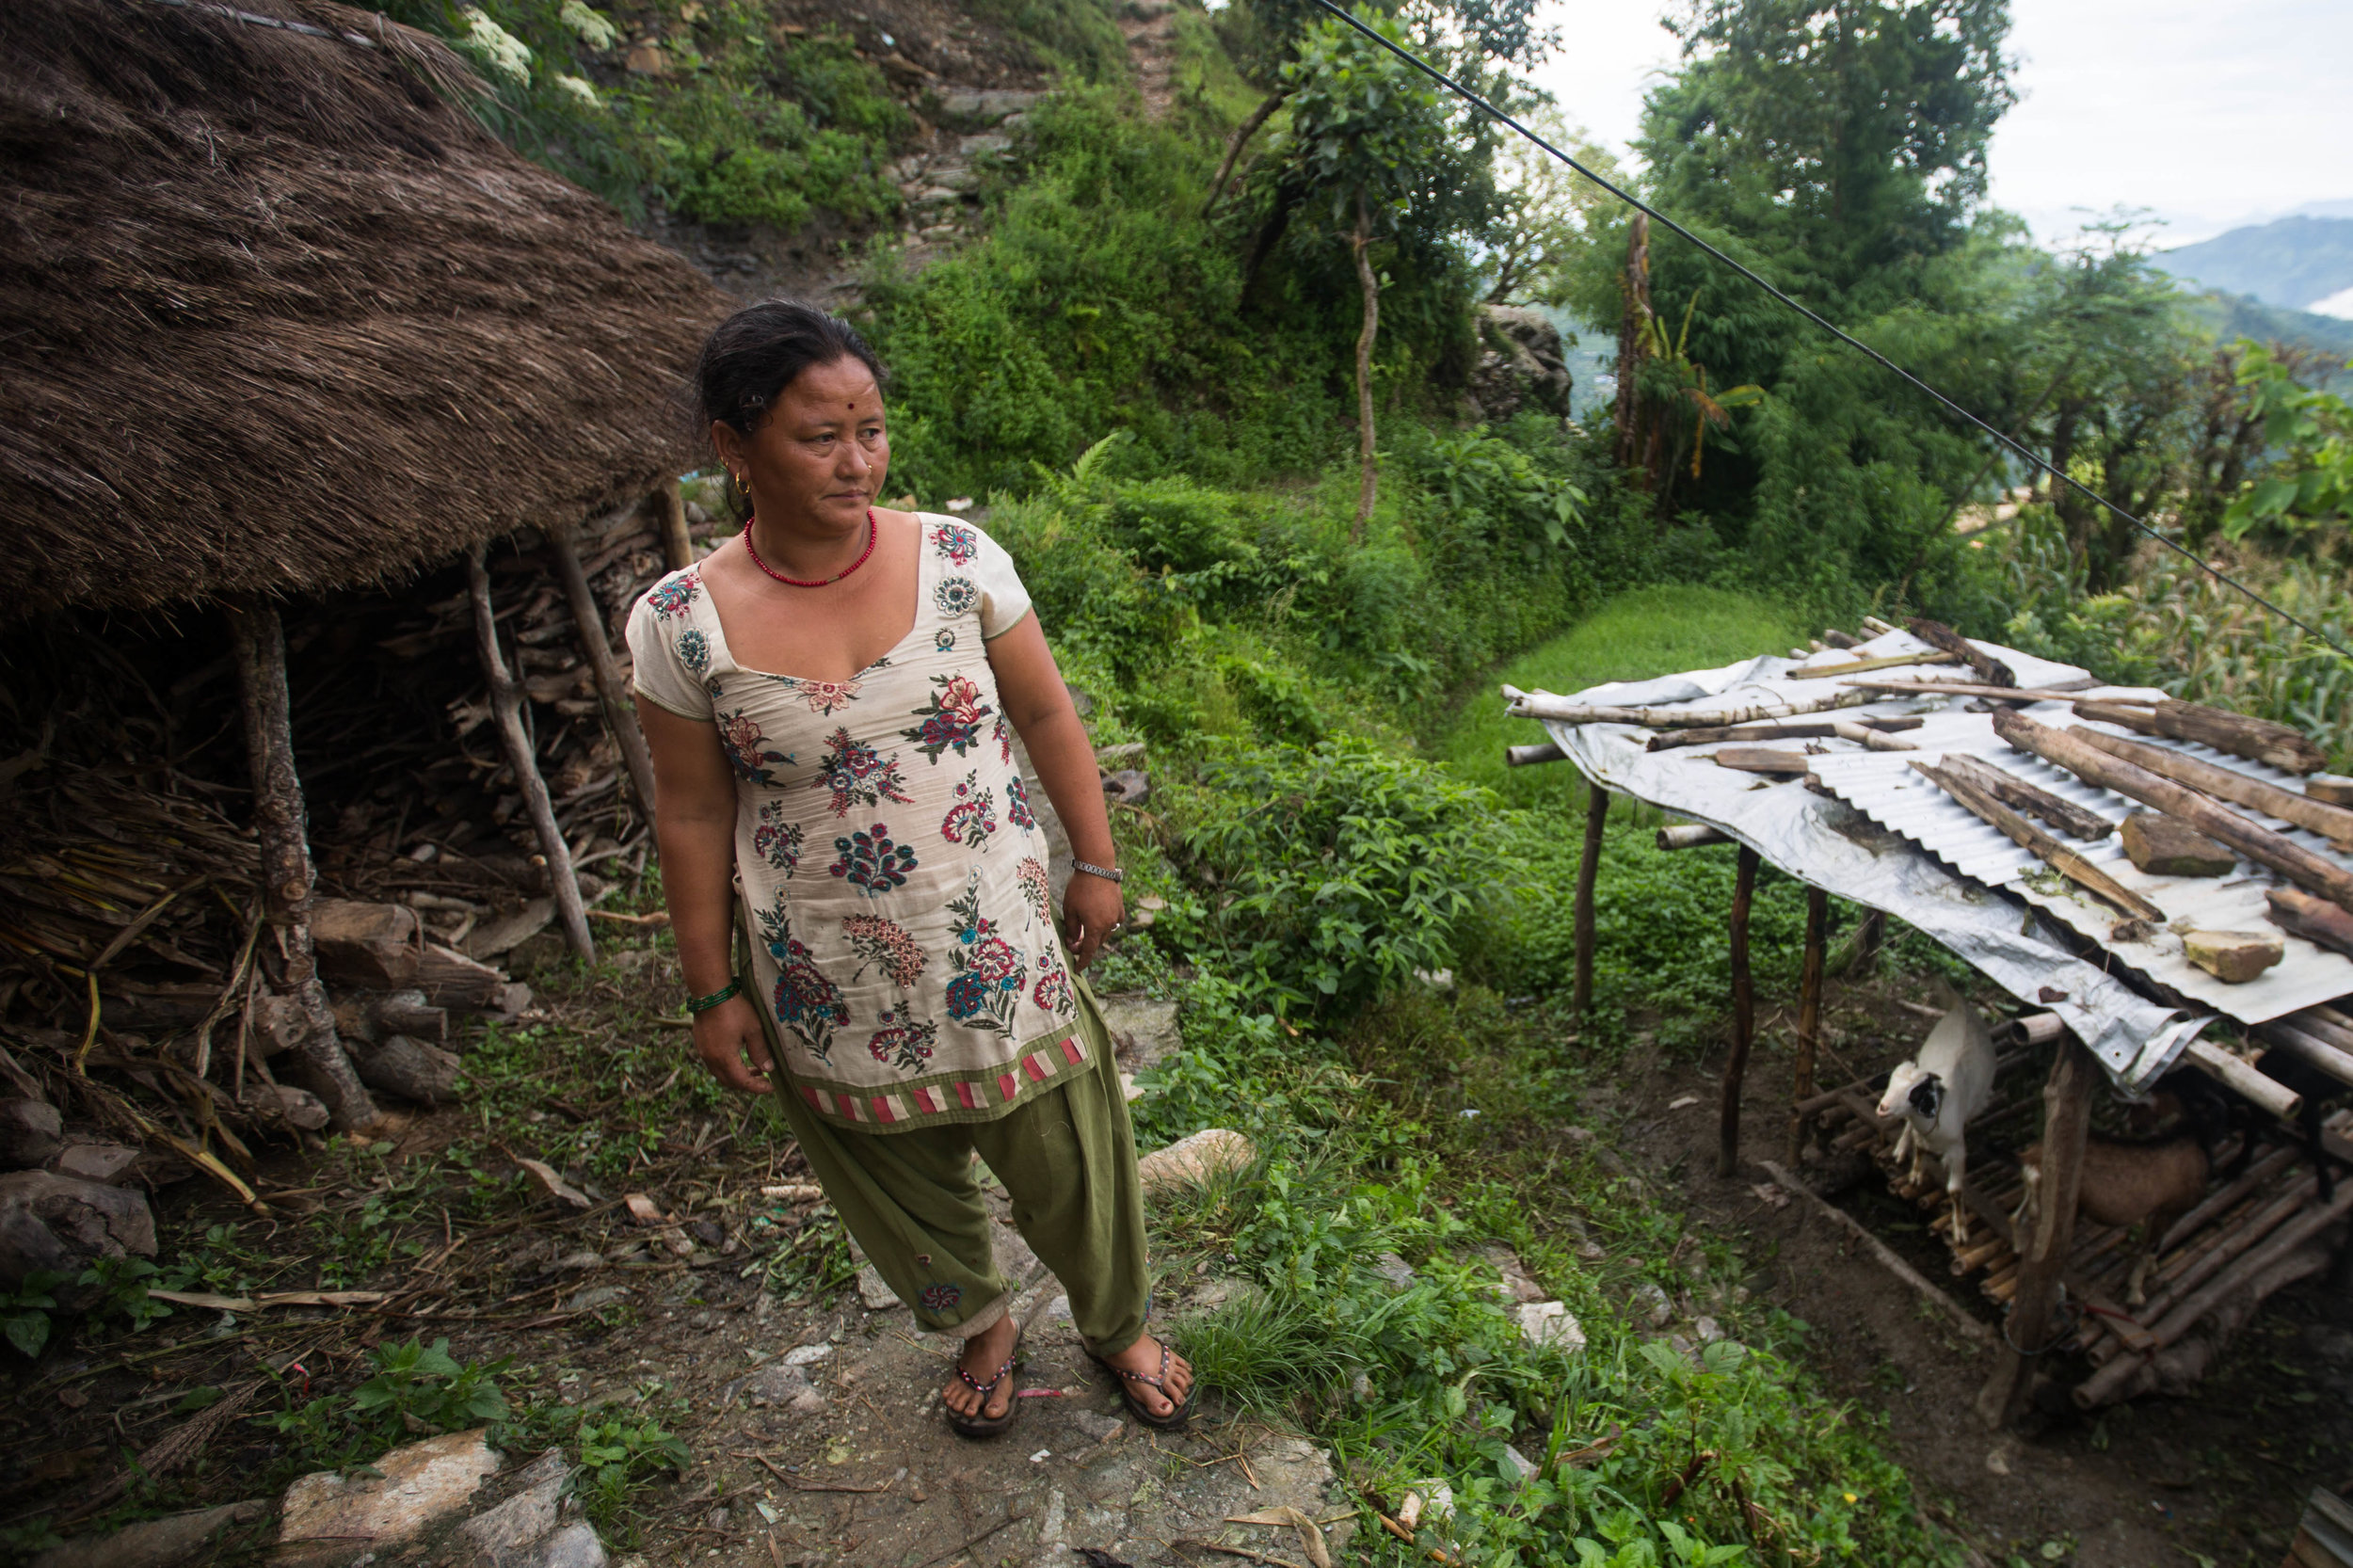 Chari Baram stands outside her home in Gorkha, Nepal, on Aug. 1, 2016.